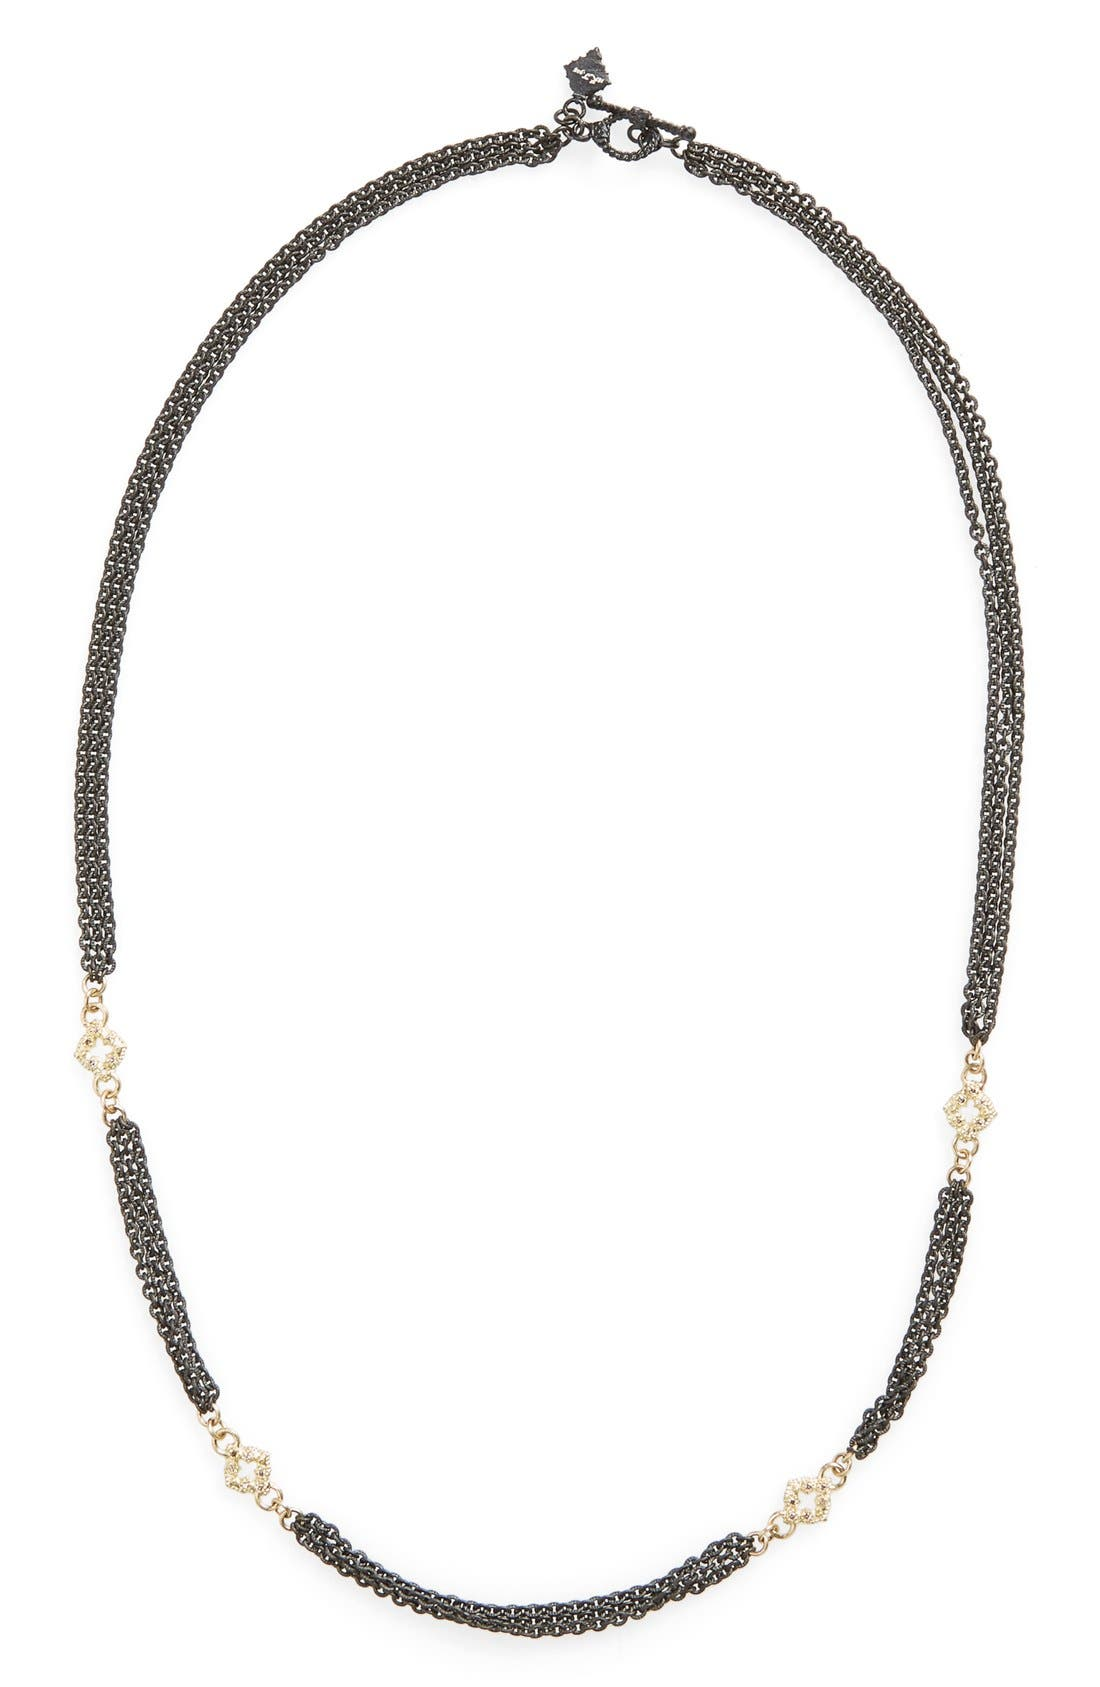 New World Strand Necklace,                             Main thumbnail 1, color,                             GOLD